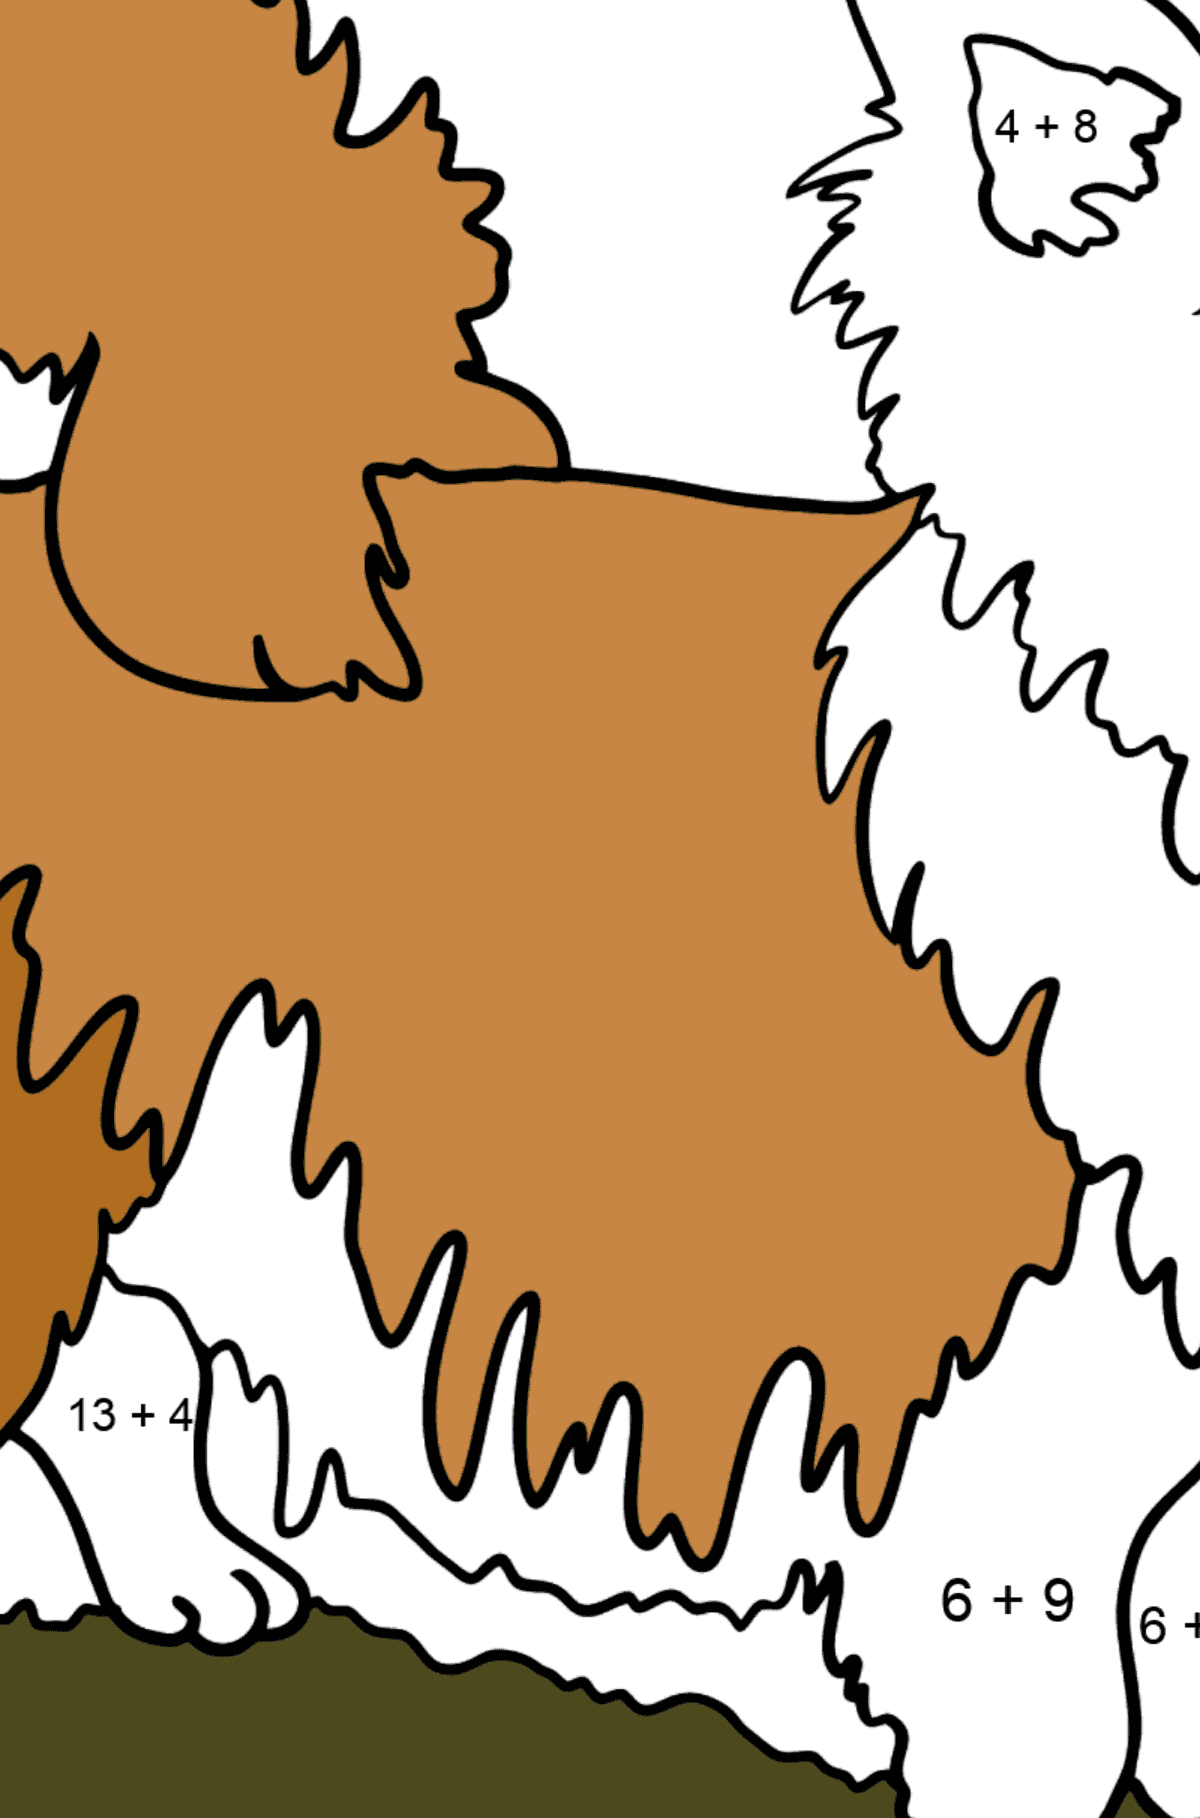 Chihuahua coloring page - Math Coloring - Addition for Kids